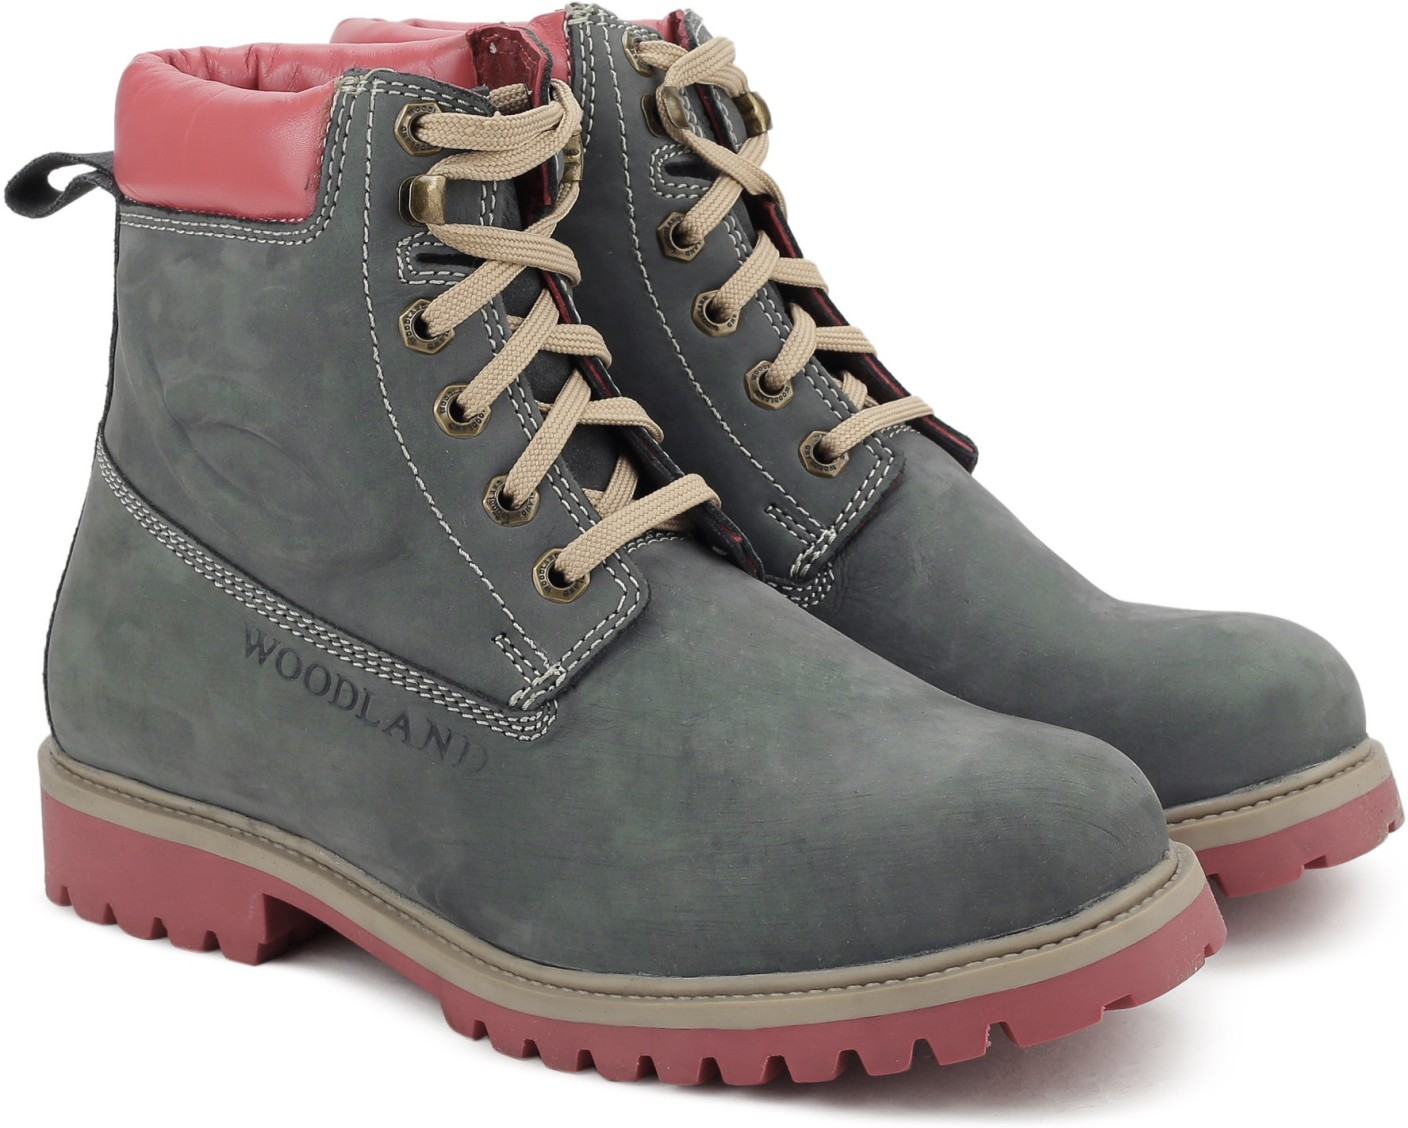 Woodland Boots For Men - Buy NAVY Color Woodland Boots For ...